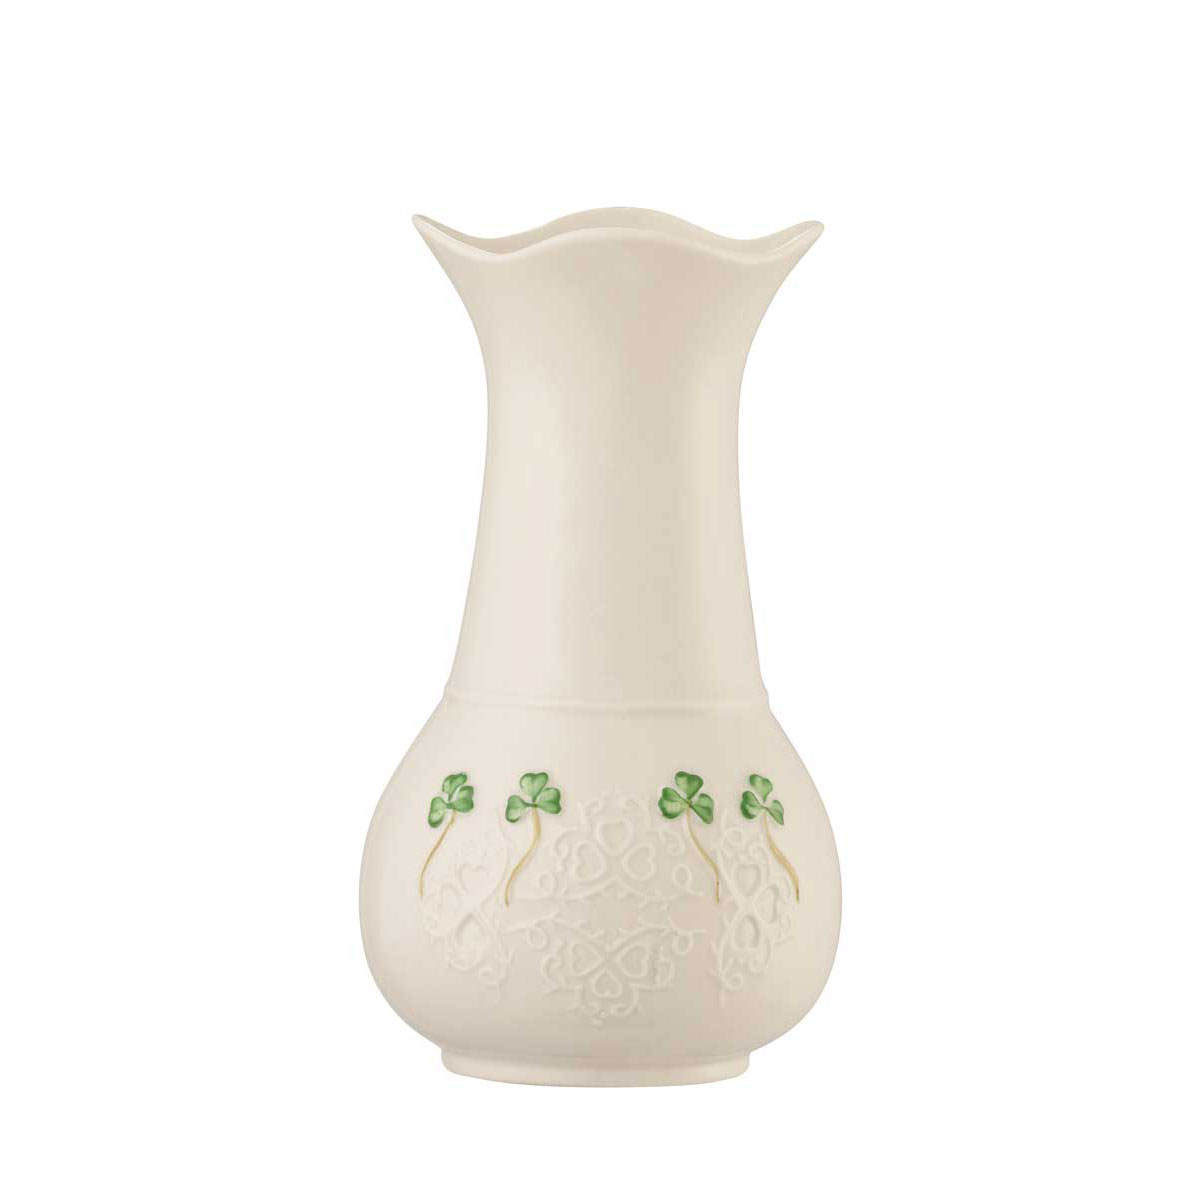 "Belleek China Shamrock Lace 7"" Vase"